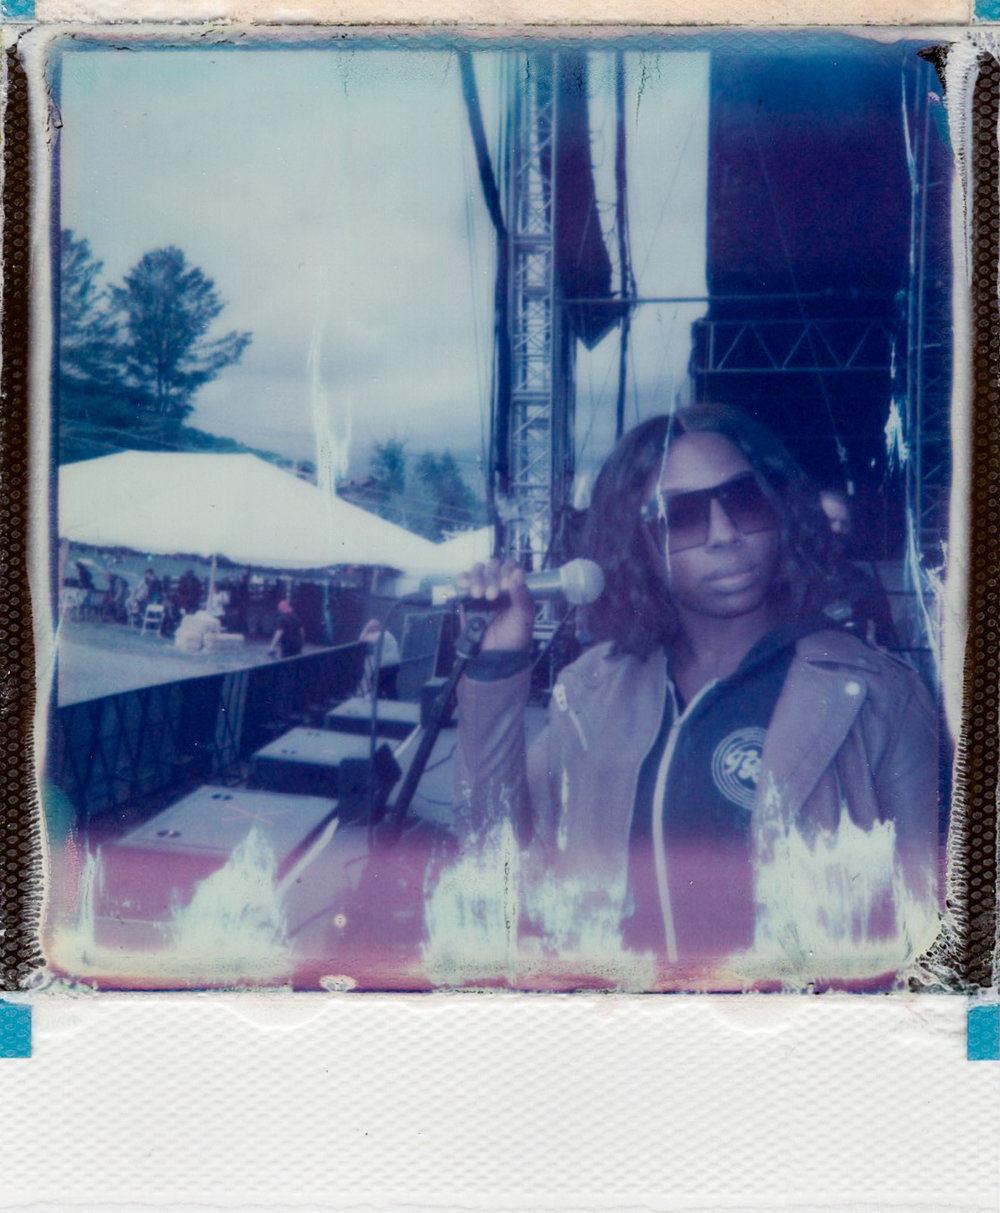 mary_caroline_russell_music_photographer_altanta_nashville_mountain_jam_polaroid-1